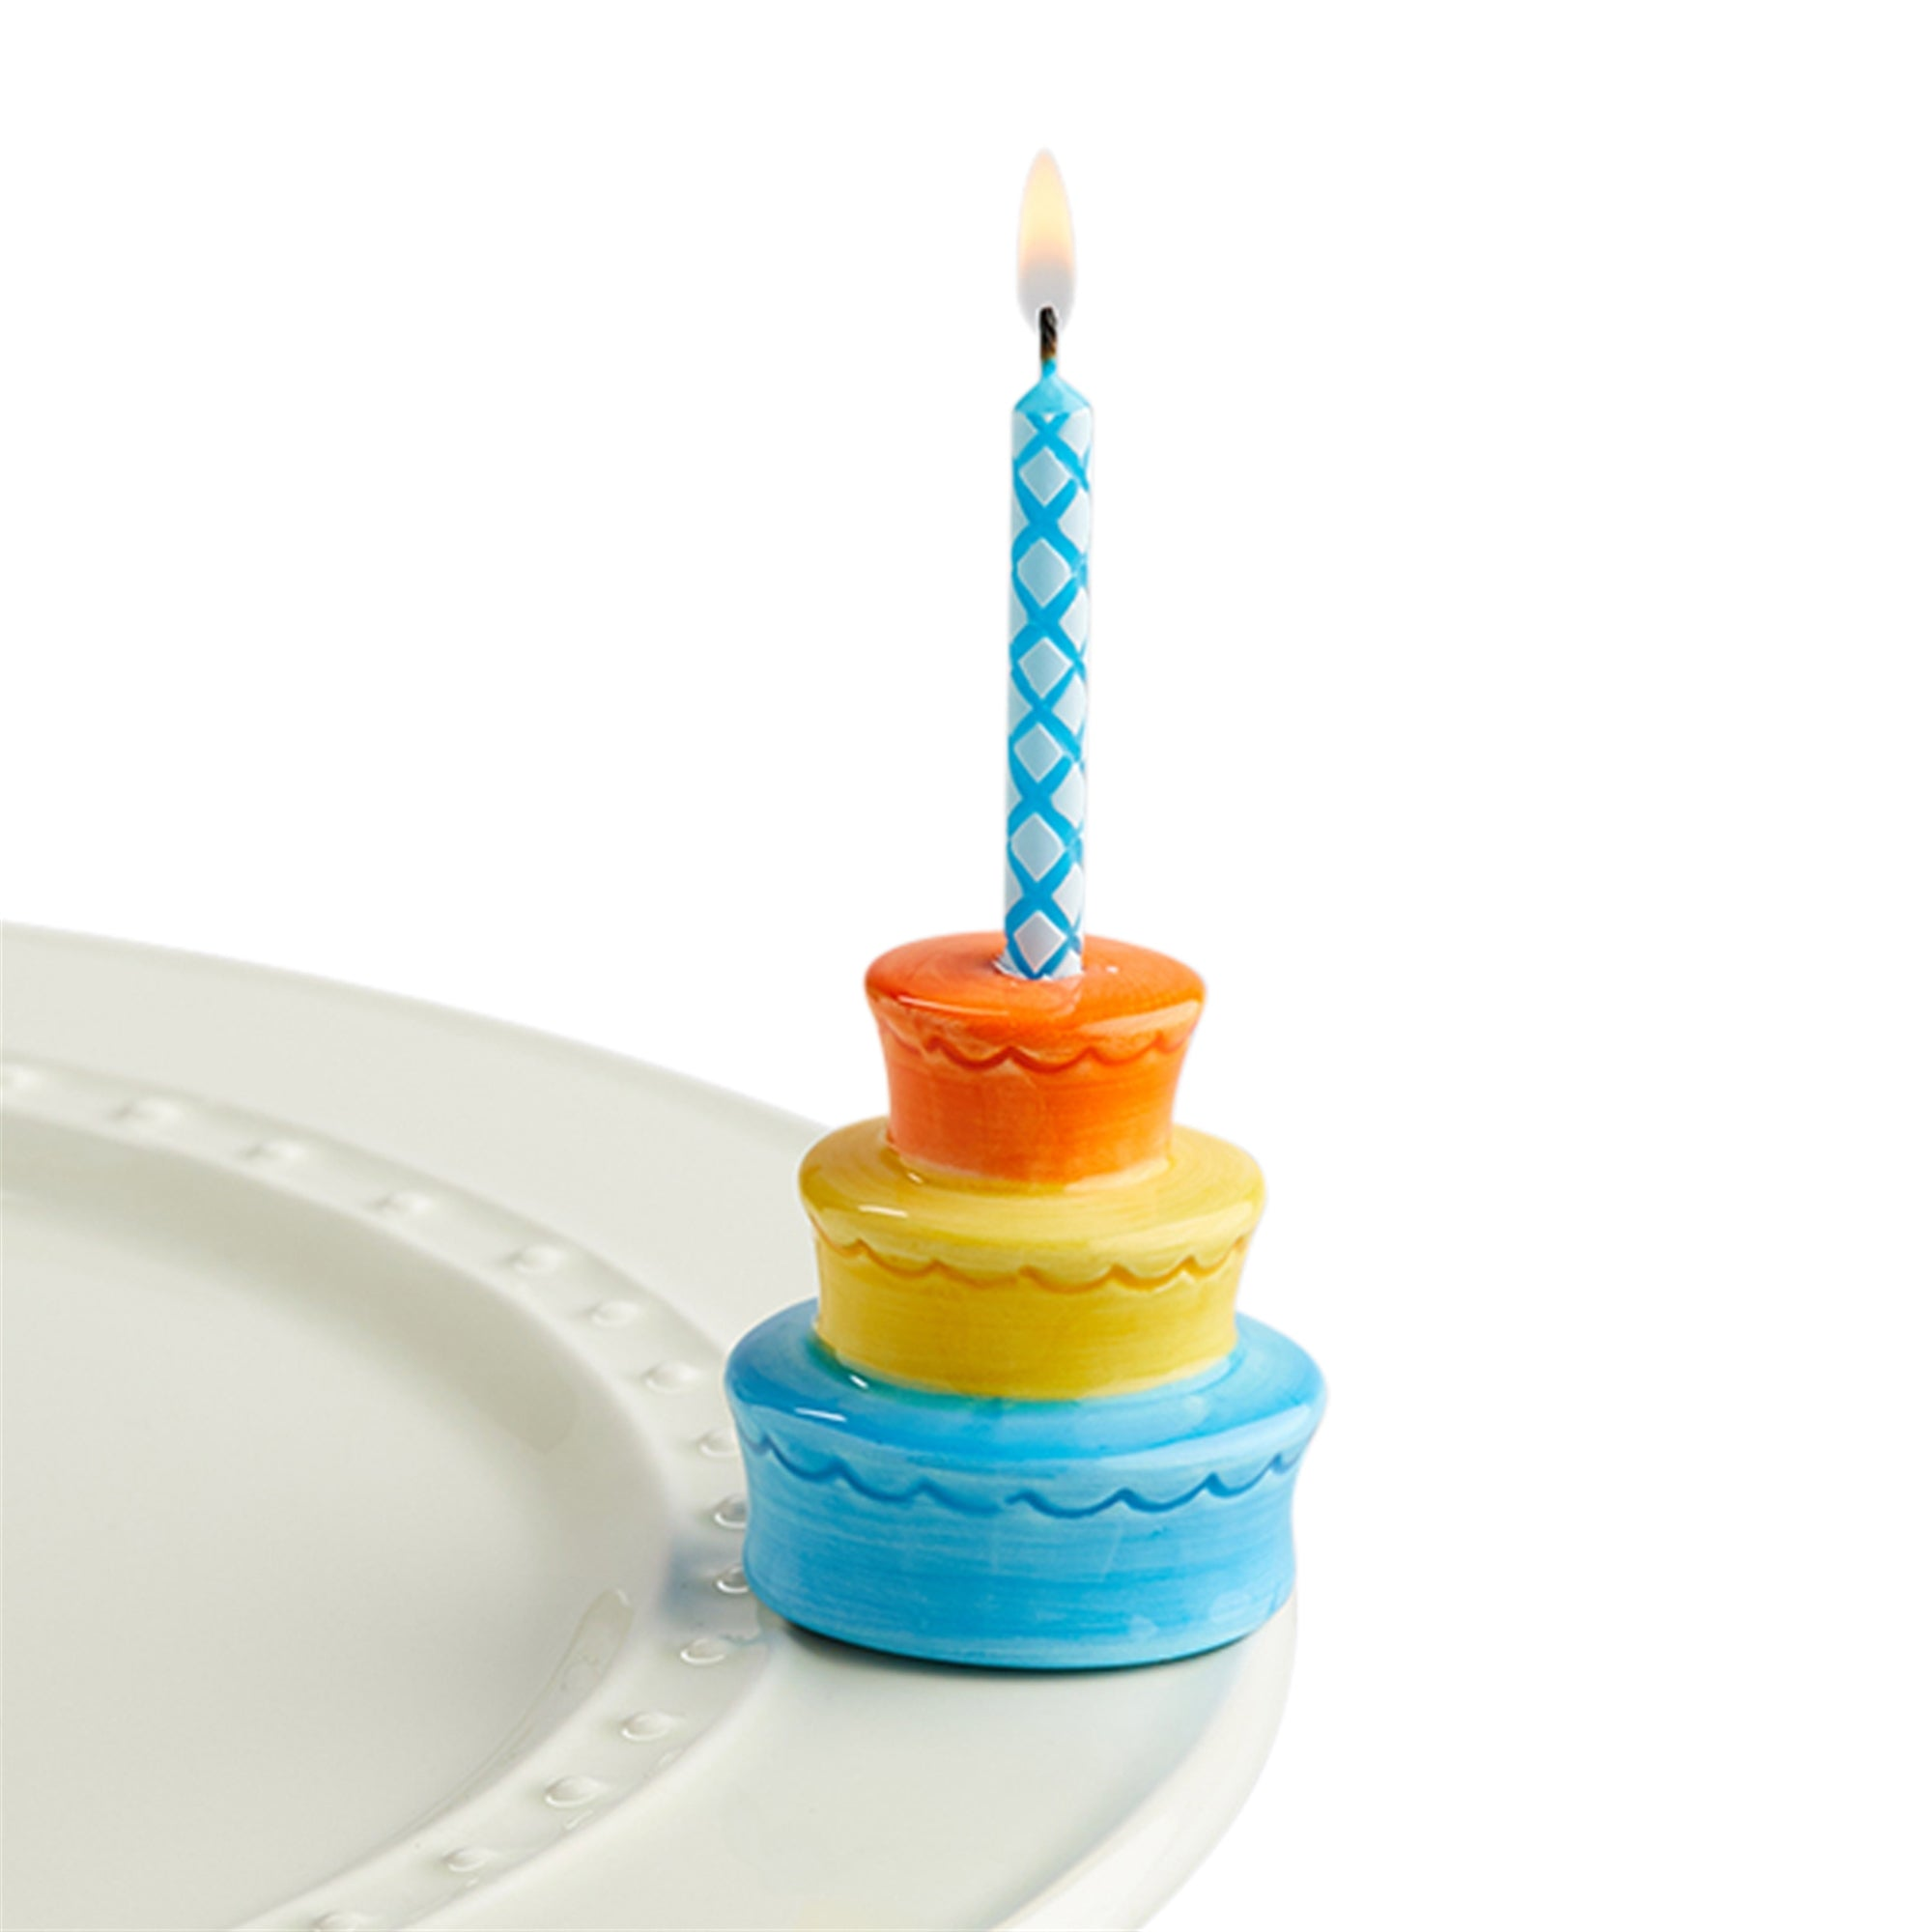 Happy birthday to you! happy birthday to you! The best birthday ever mini holds one candle to make your birthday wishes come true.